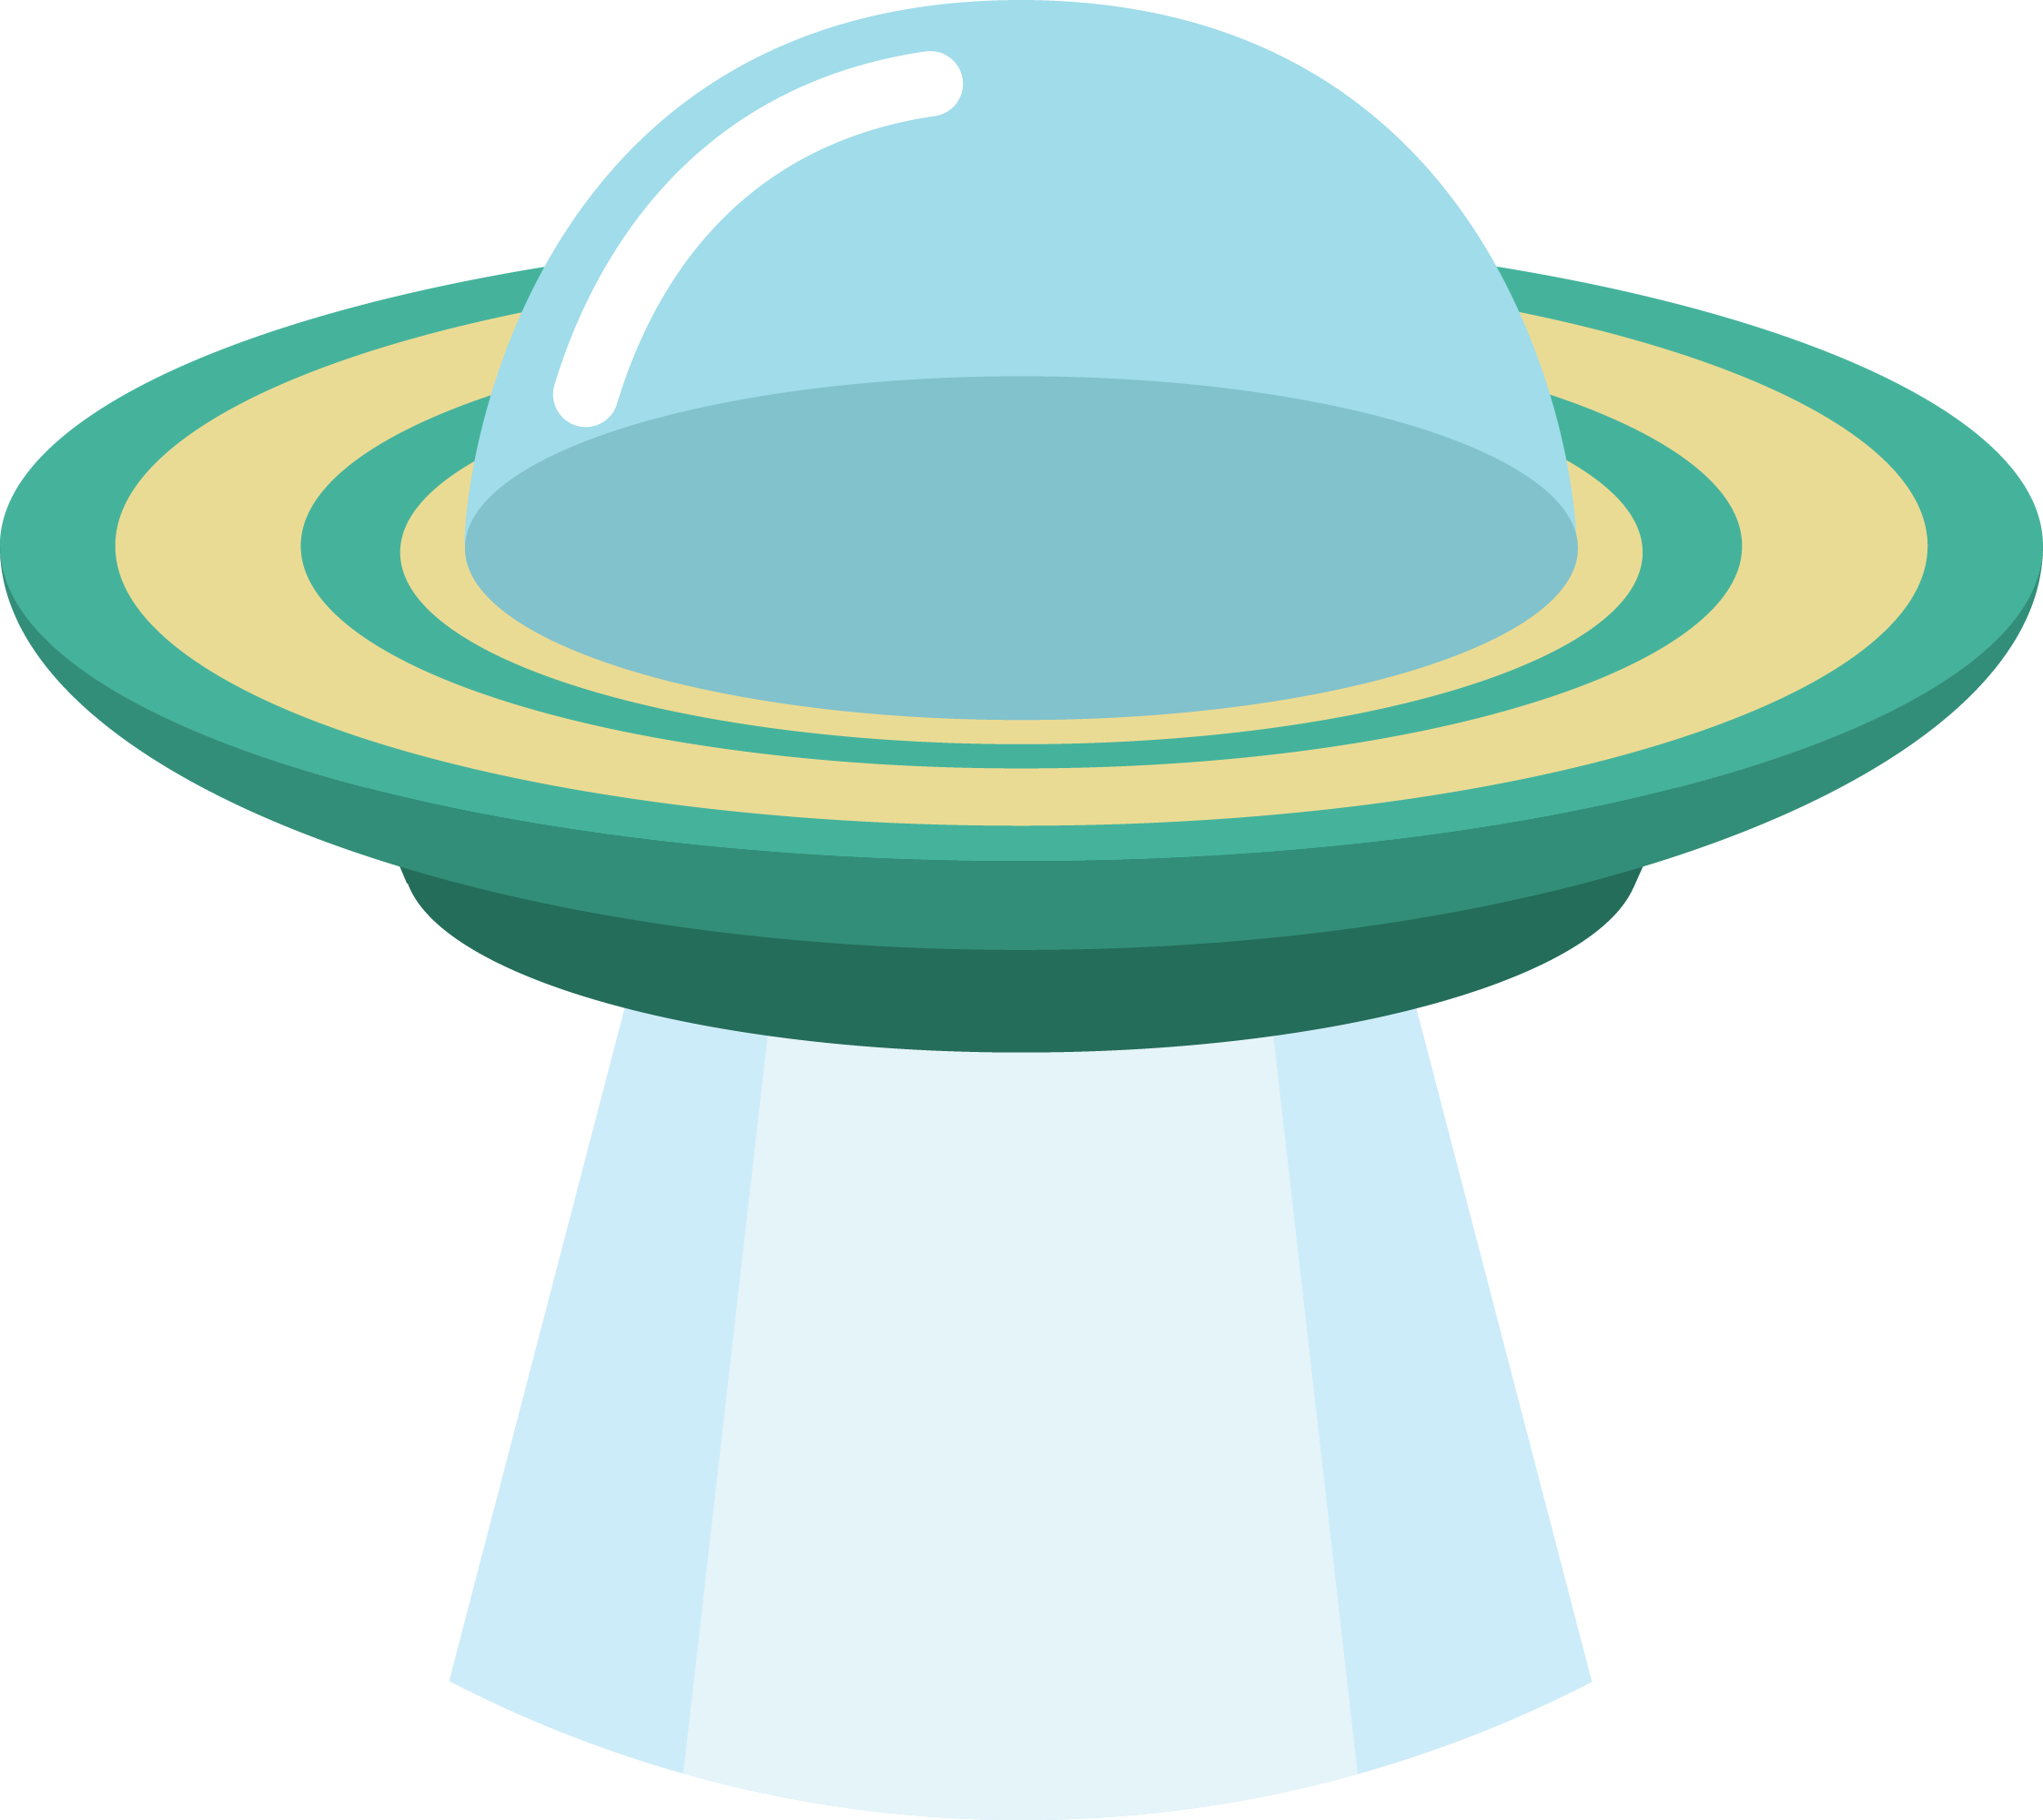 Vector ufo illustrator. Pin by charudeal on